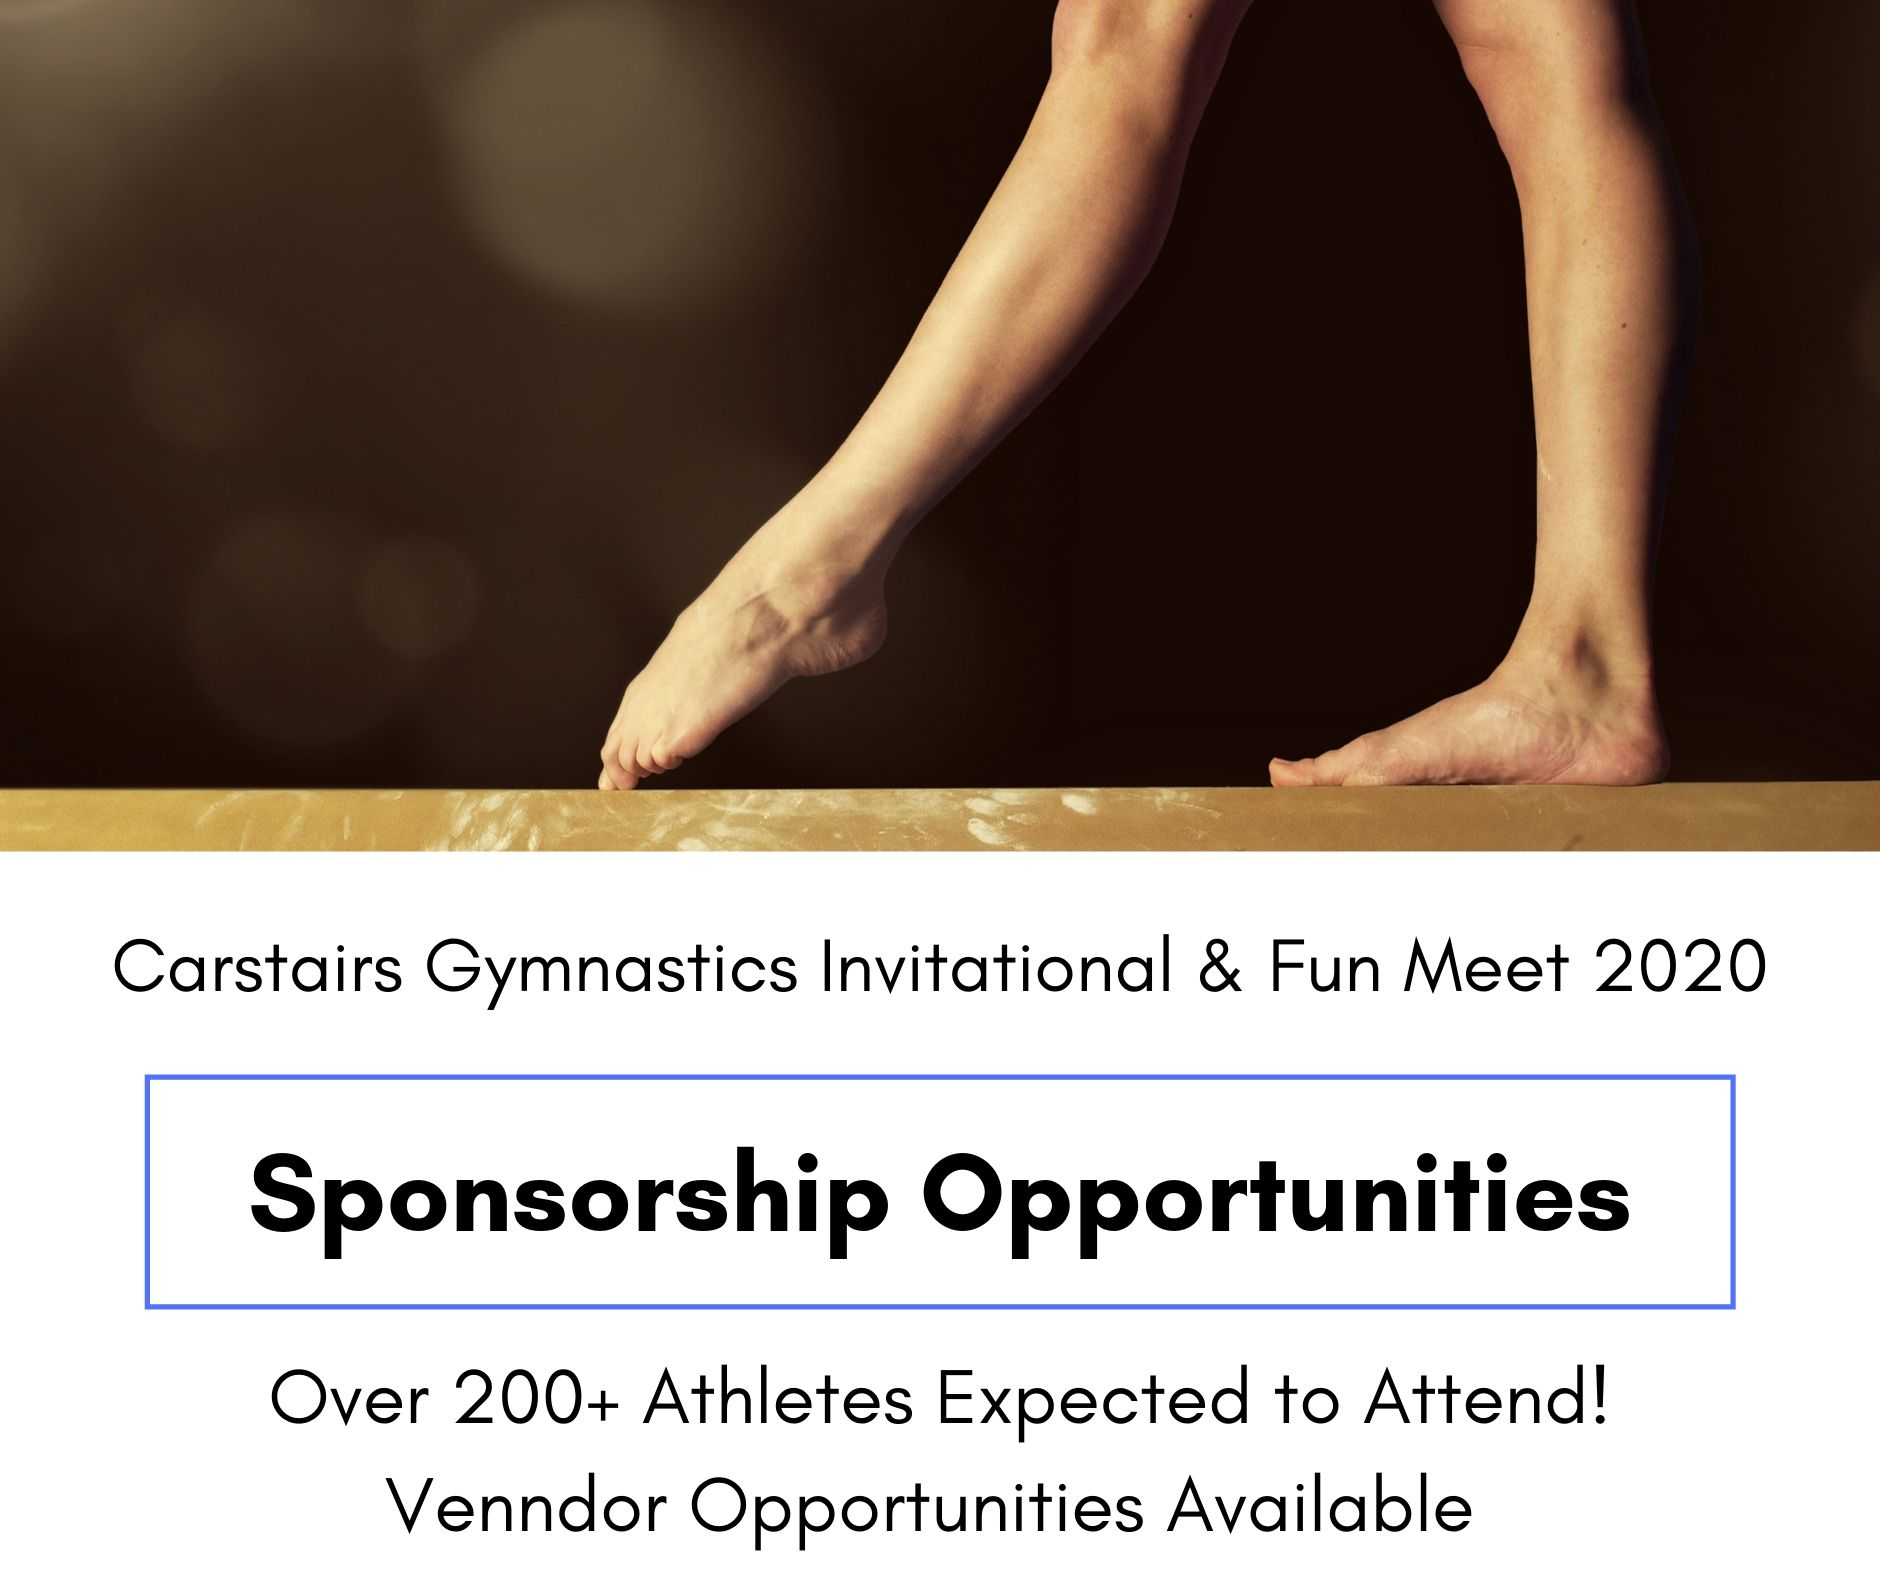 Support Carstairs Gymnastics. - Click Here to Sponsor the 2020 Carstairs Gymnastics Invitational and Fun Meet - January 25-26, 2020.Celebrating 30 years!